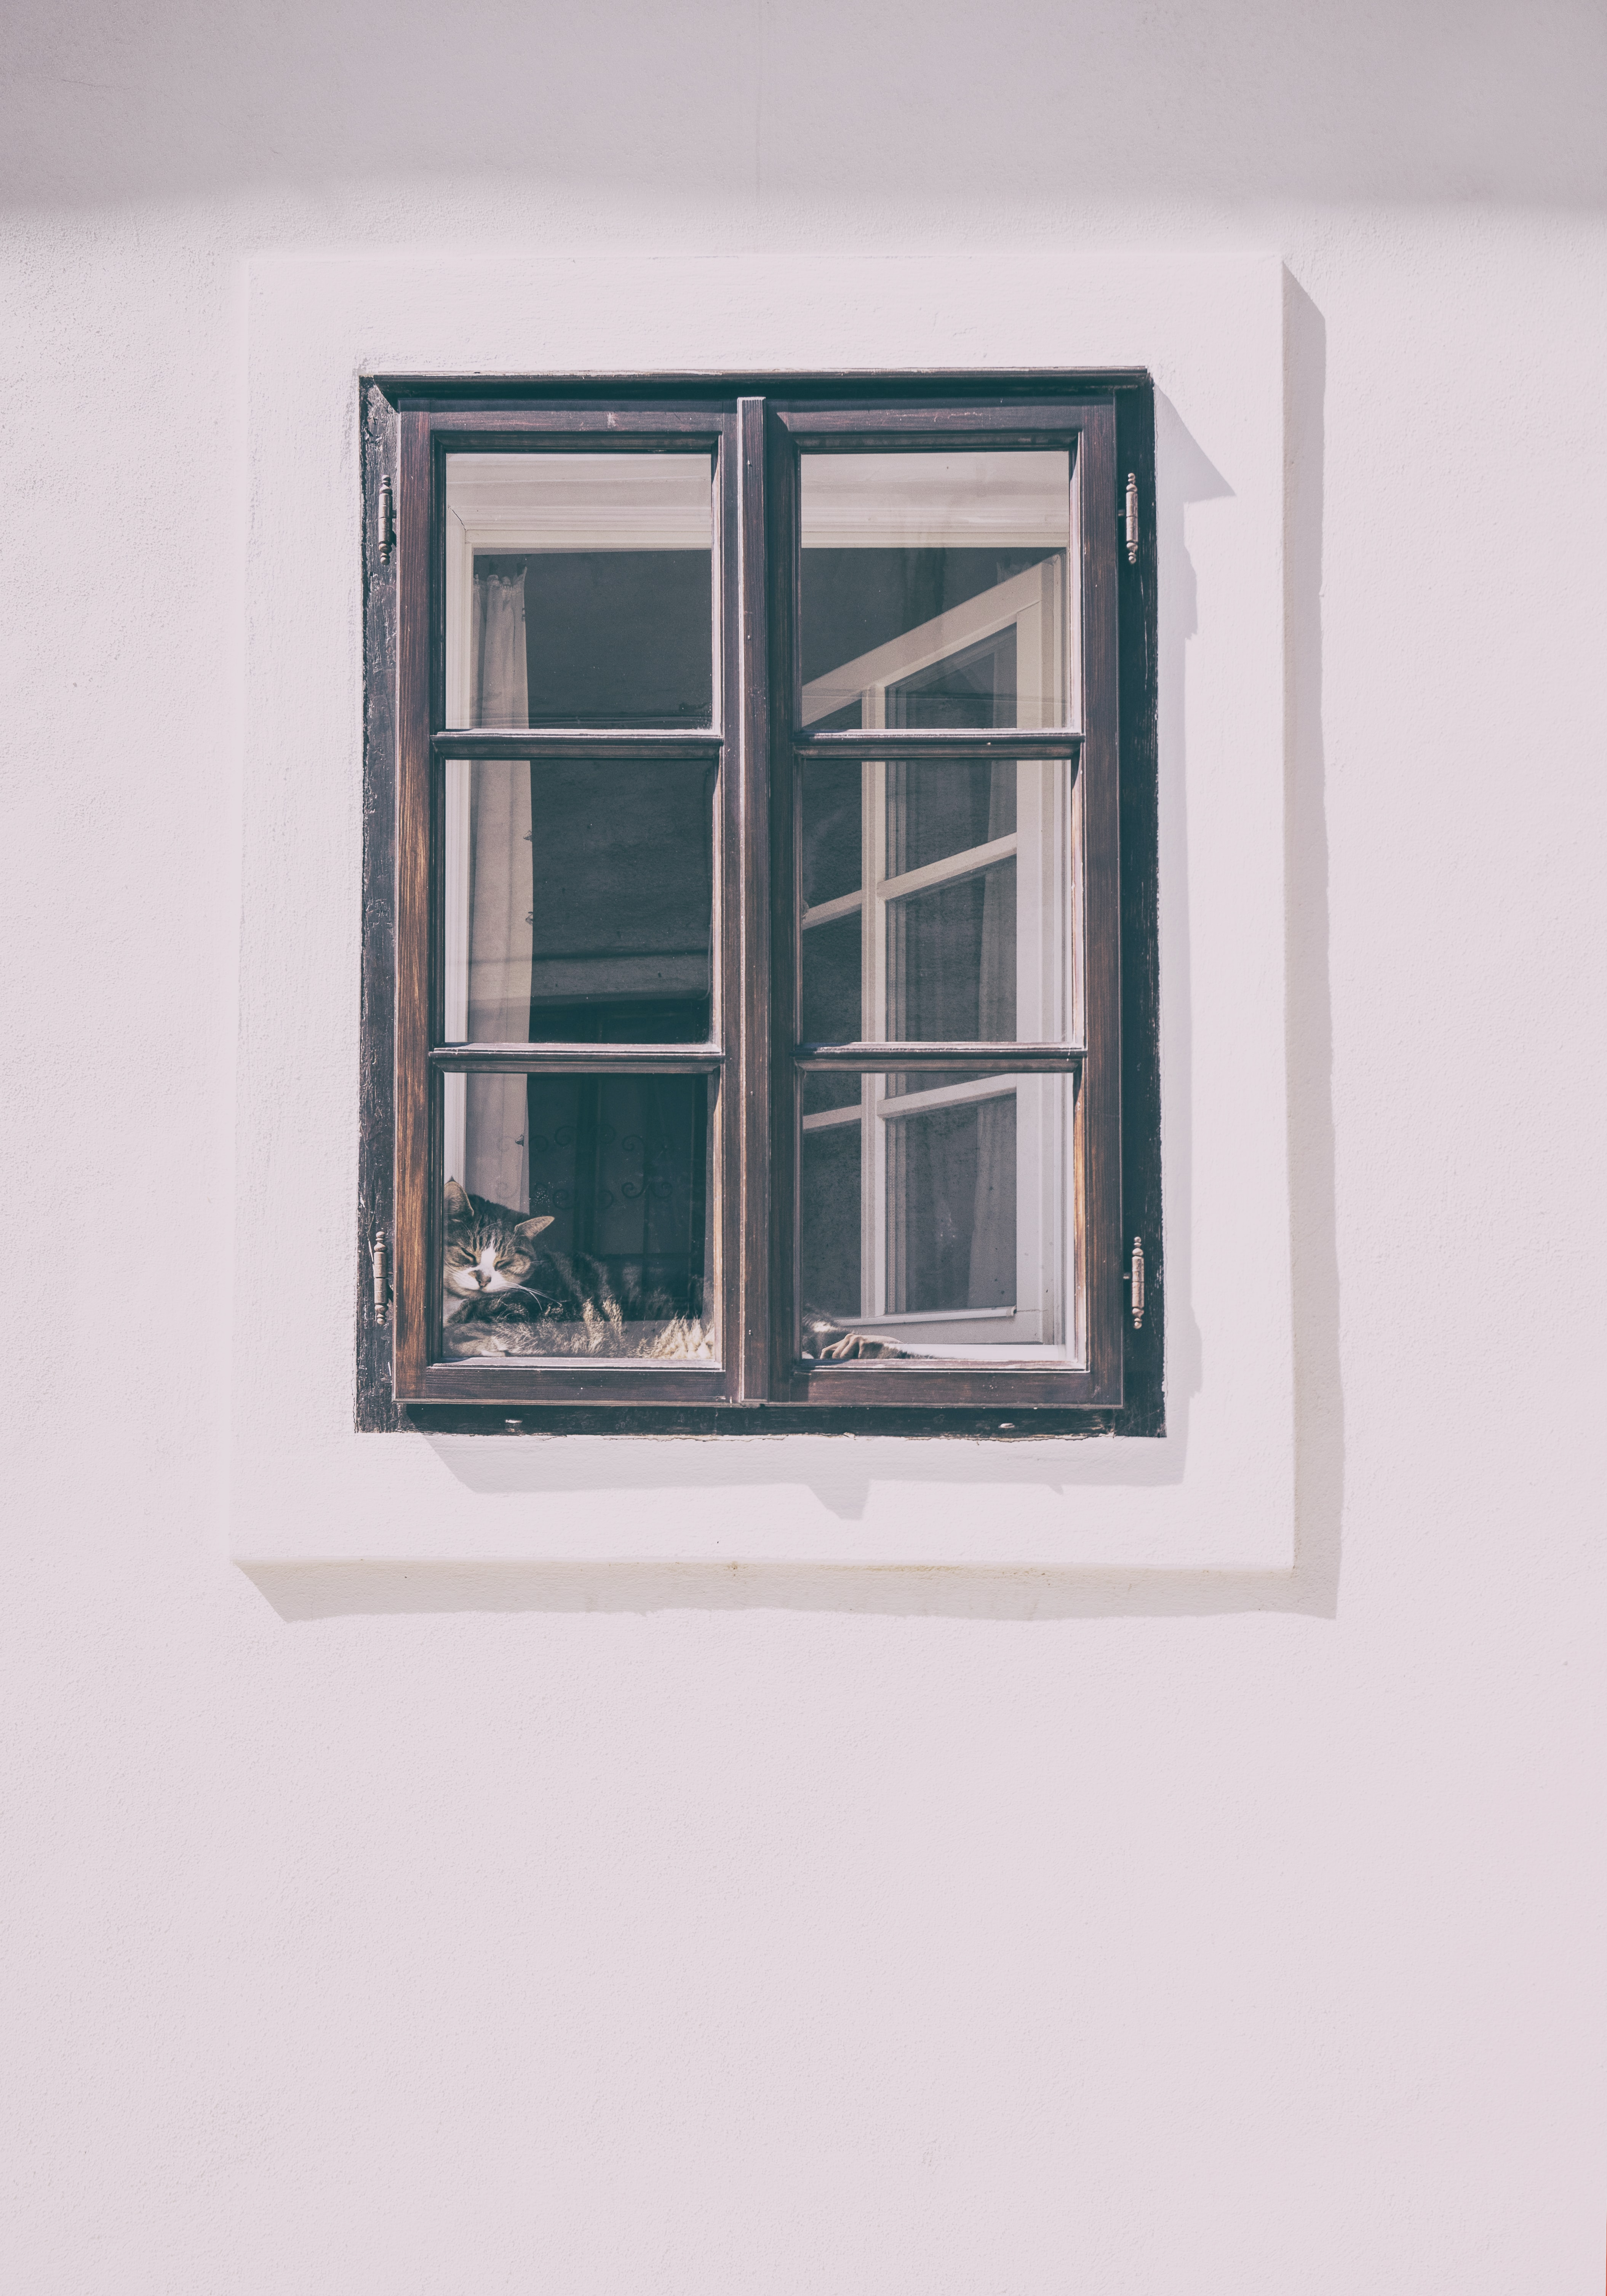 A tabby cat lying on the window sill seen from the outside & Window Frame Pictures   Download Free Images on Unsplash